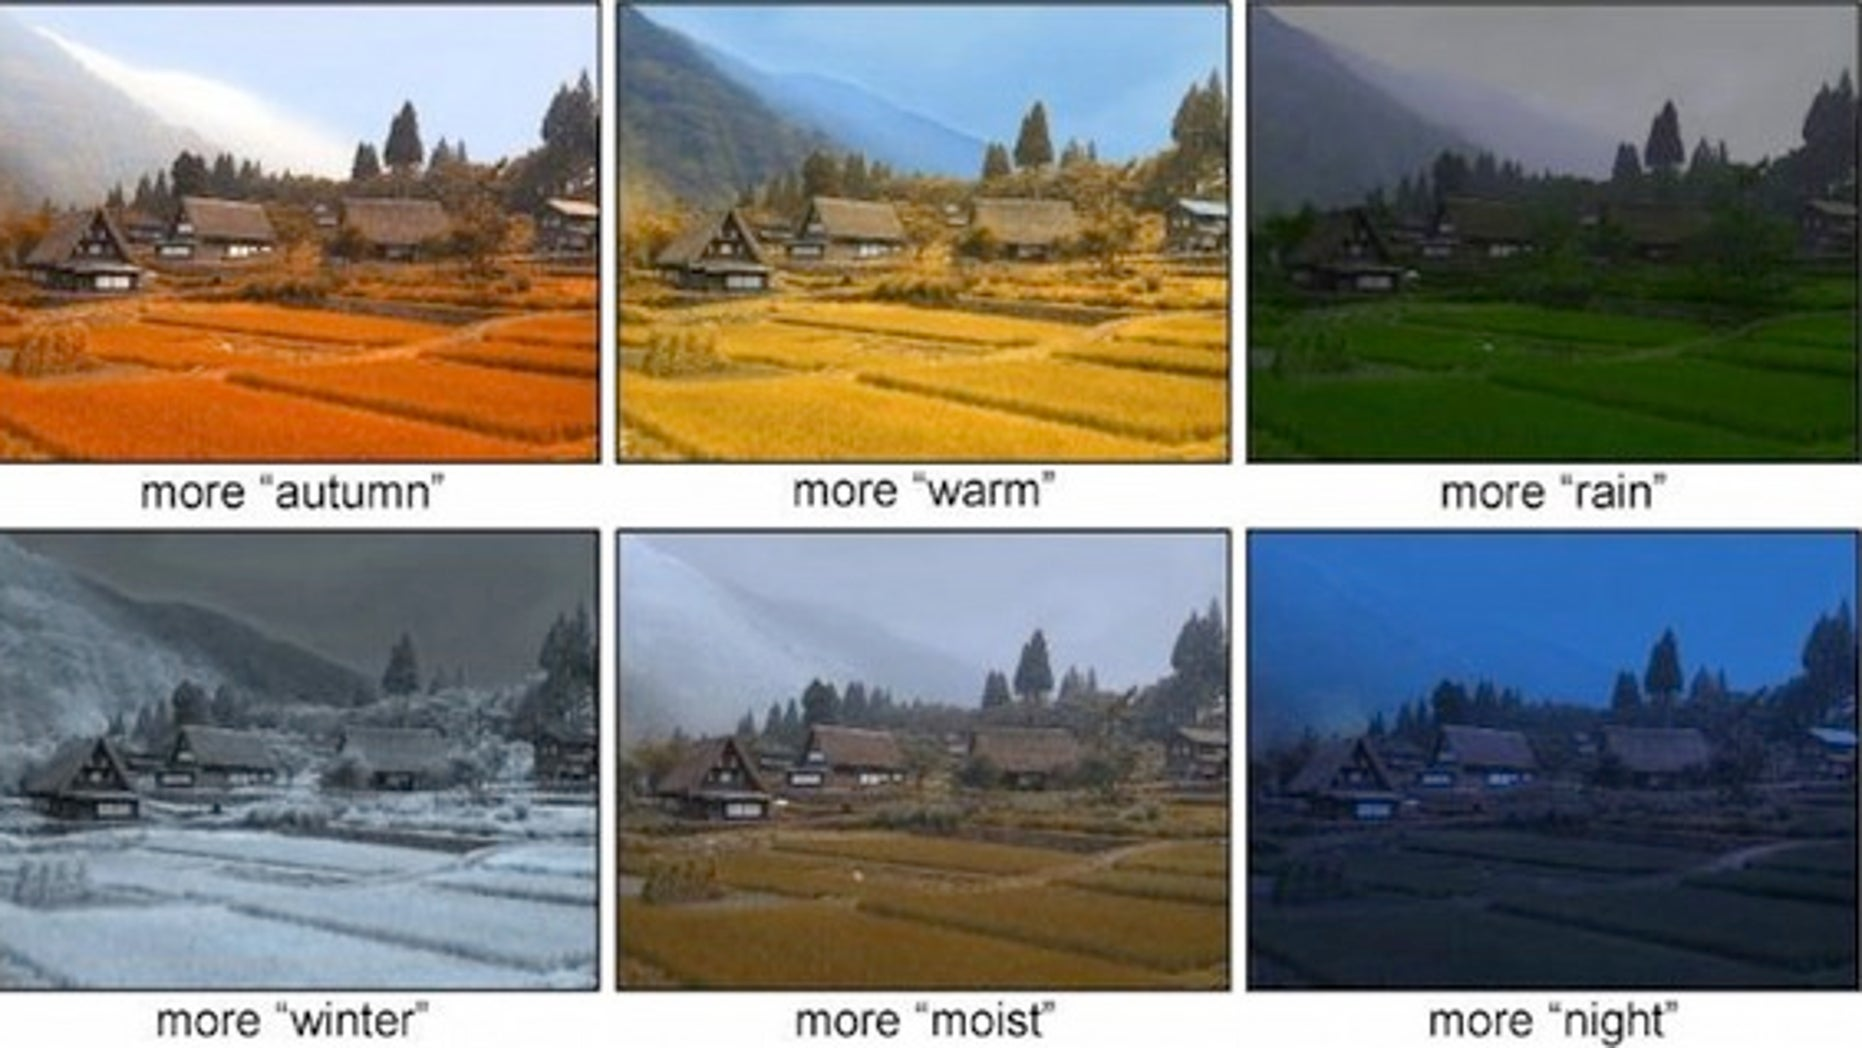 A new photo-editing algorithm lets people change features including weather, time of day and the season.